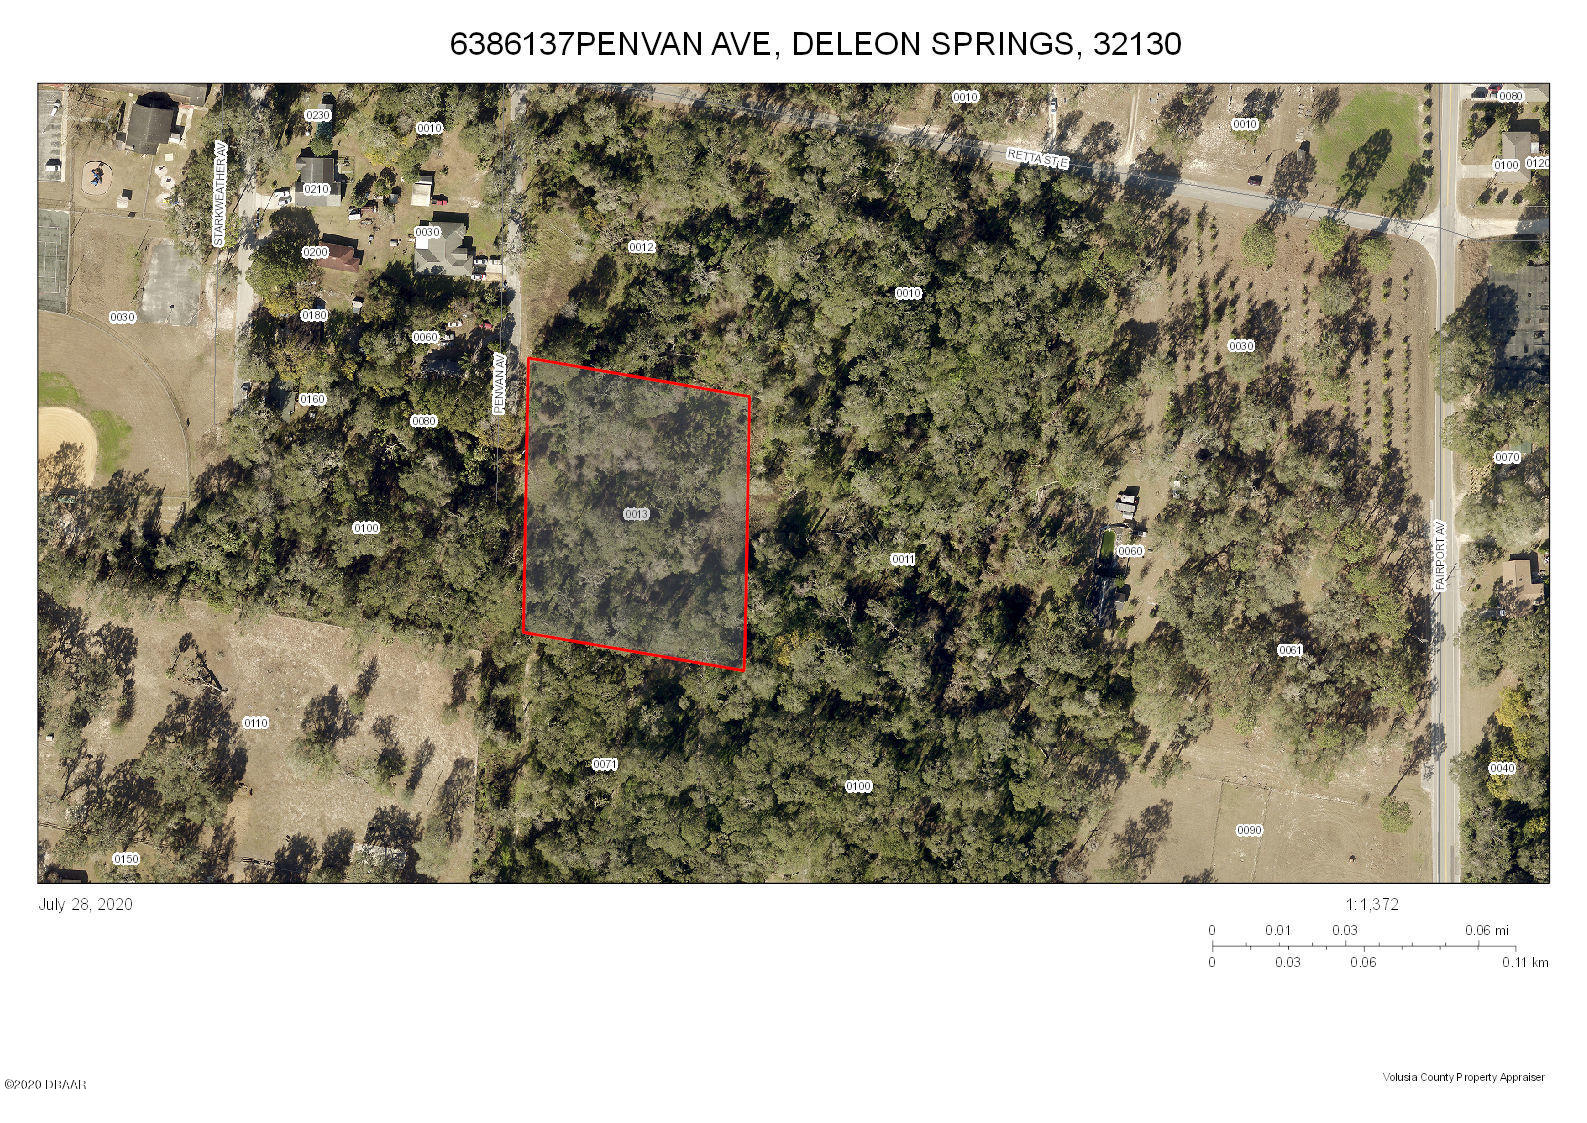 0 Penvan Avenue, DeLeon Springs, Florida 32130, ,Lots And Land,For Sale,0 Penvan Avenue,1073841